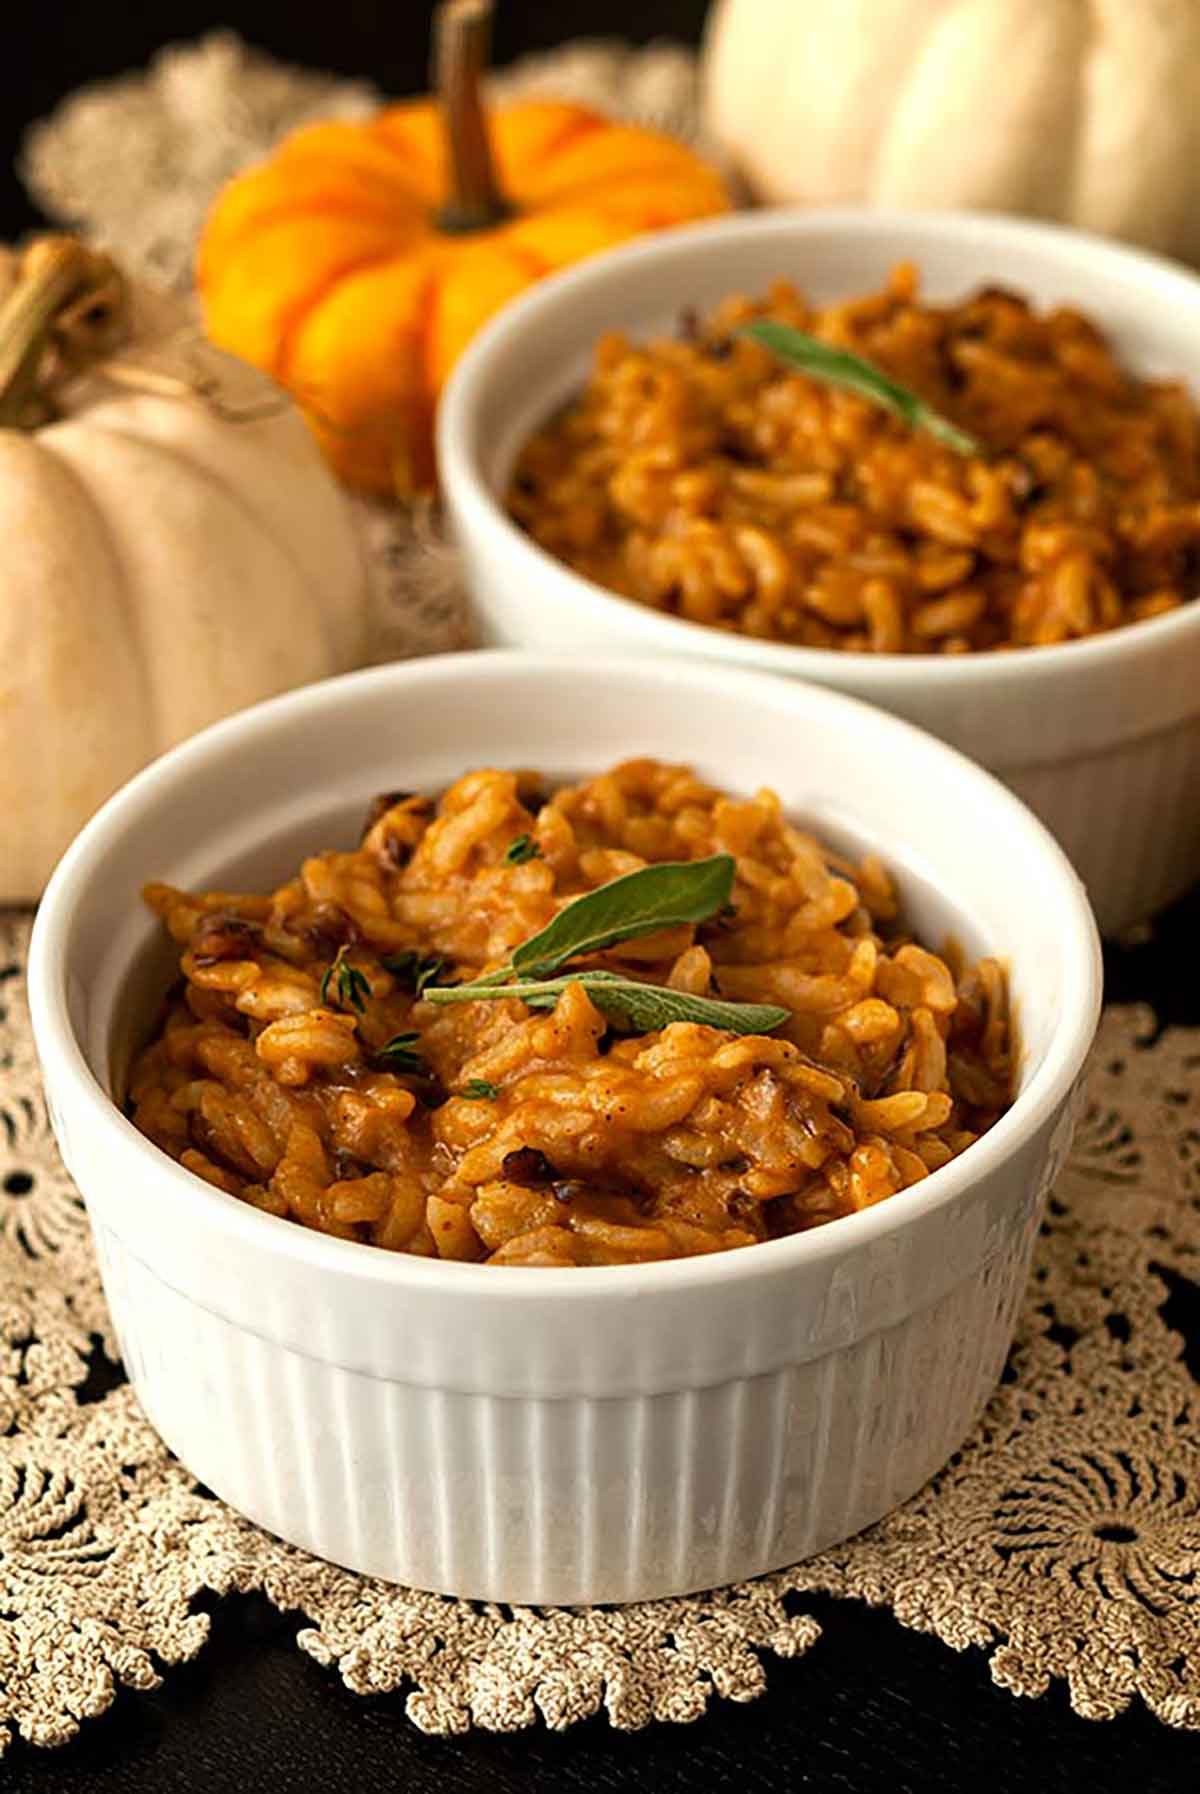 2 bowls of pumpkin risotto, garnished with sage leaves, on a lace table cloth with 3 small pumpkins in the background.